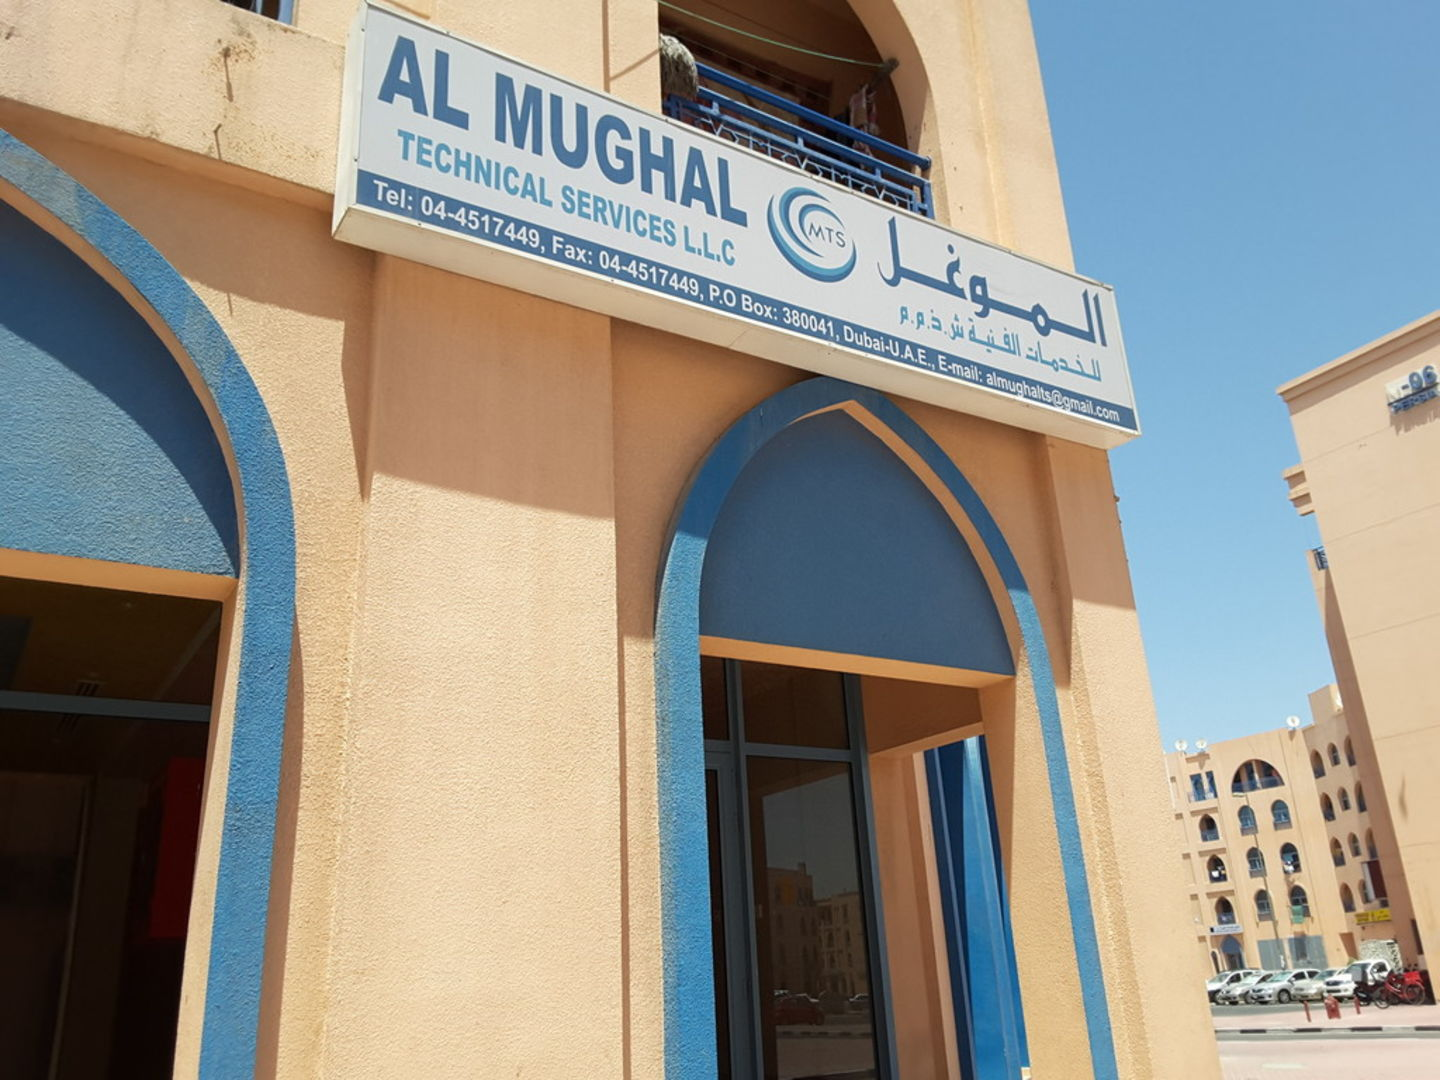 Walif-business-al-mughal-technical-services